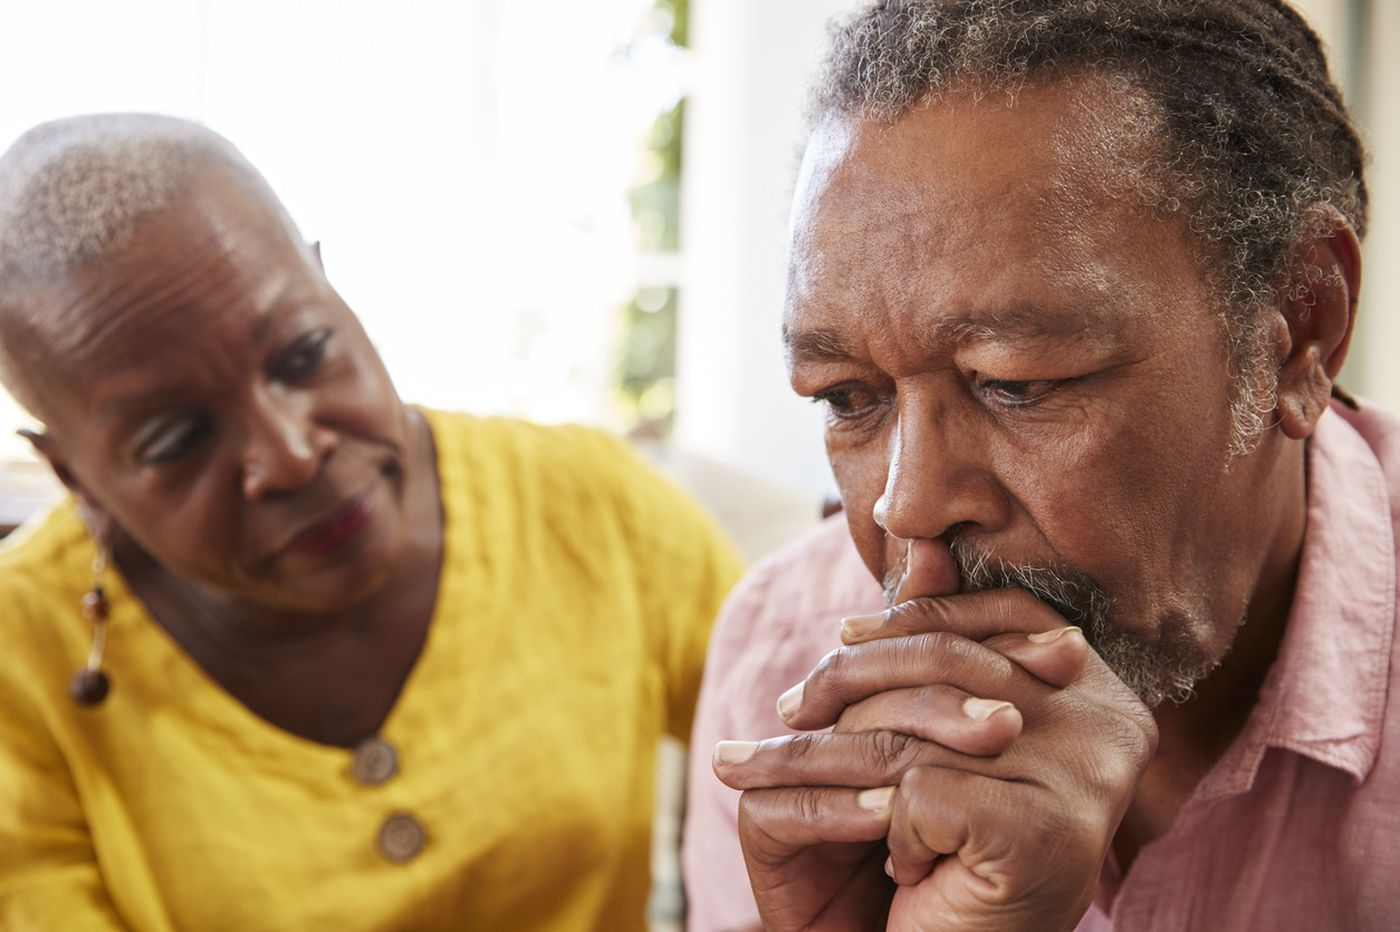 The depression treatment that helps African Americans with mild cognitive impairment